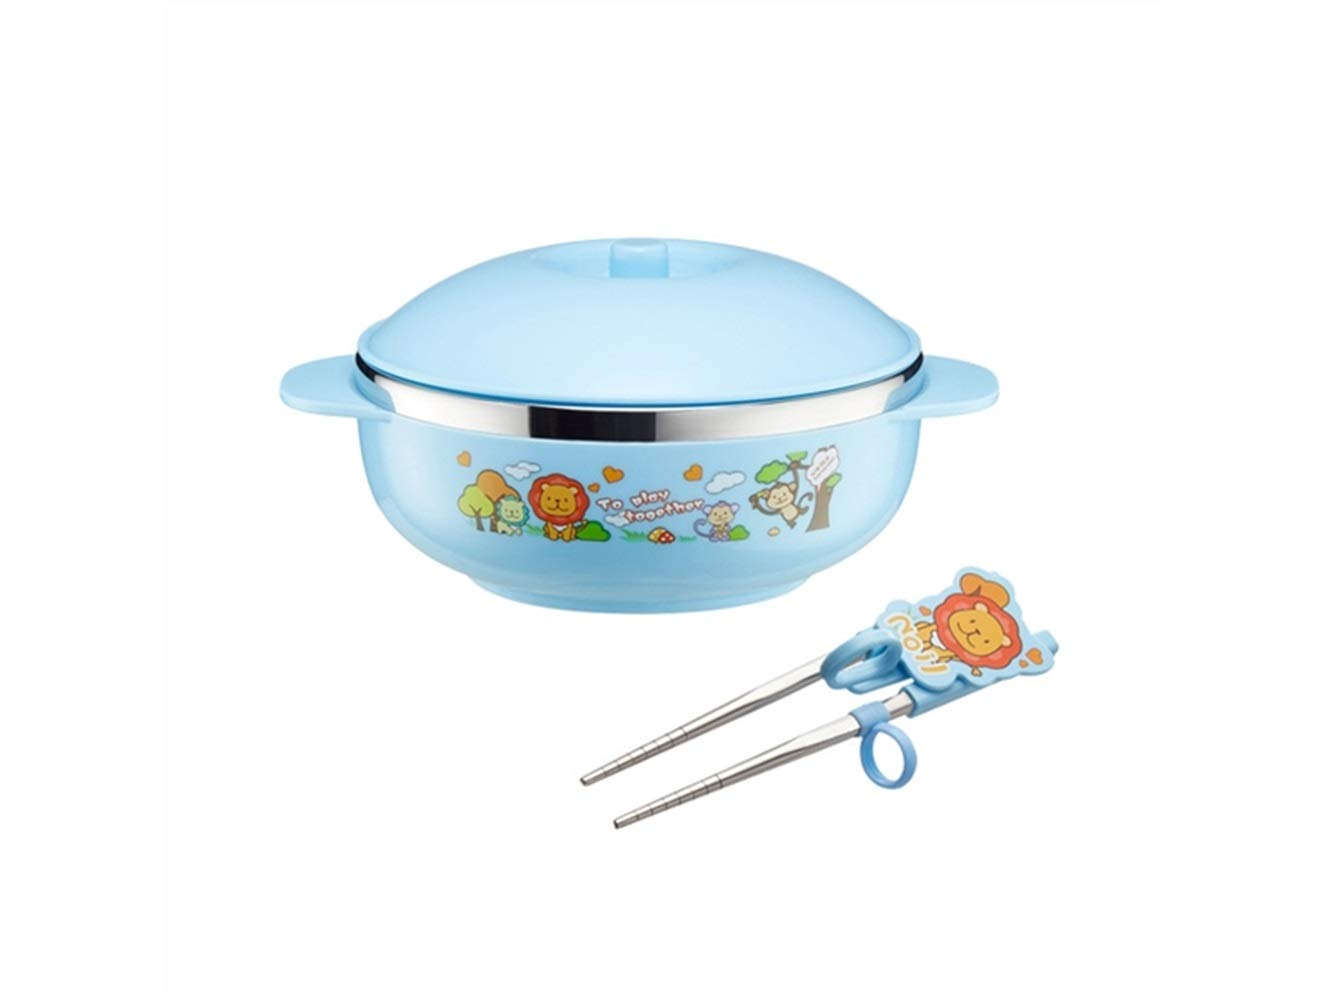 Yuchoi Contemporary Animal Pattern Baby Feeding Bowl Anti-Scald Stainless Steel Children Dish Insulation Bowl with Lid and Double Handles for Kids Students(Blue)